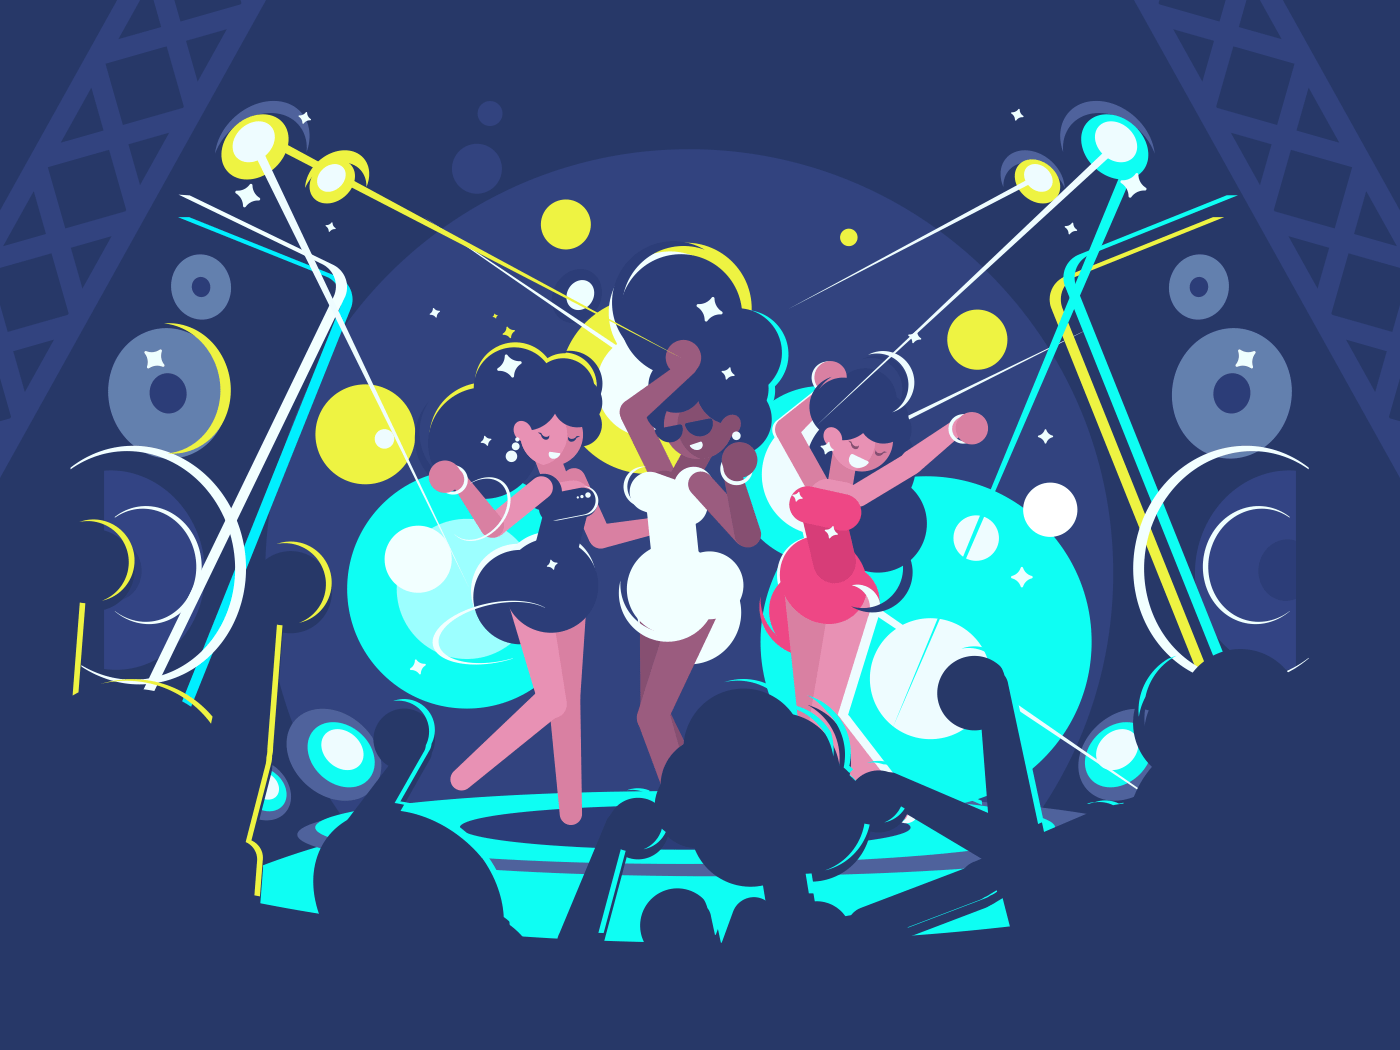 Beautiful girls dancing on dance floor in nightclub. Vector illustration